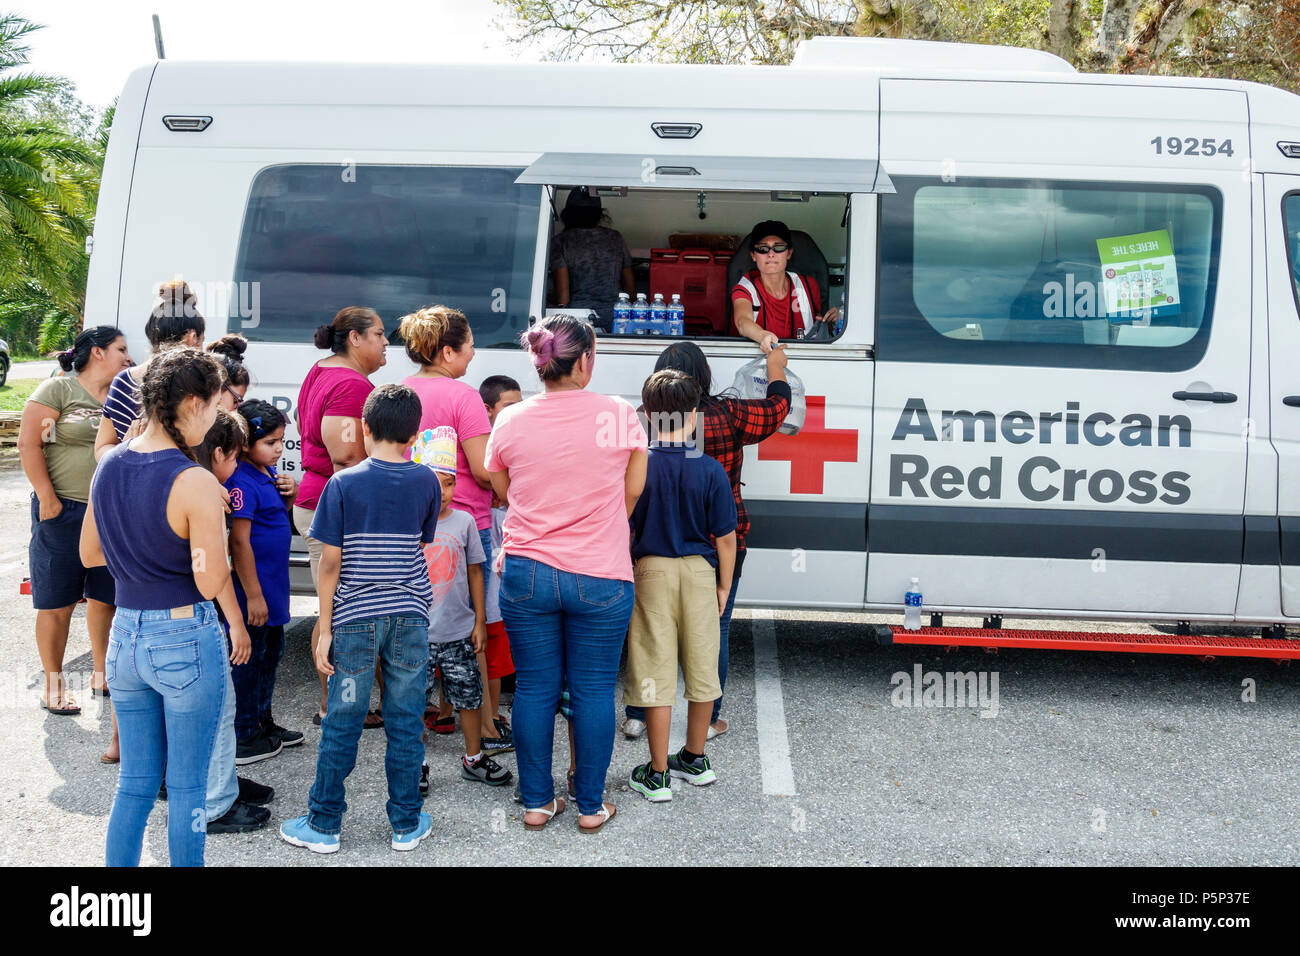 Florida LaBelle after Hurricane Irma storm aid assistance destruction aftermath disaster recovery relief Red Cross Disaster Relief volunteer food van Stock Photo